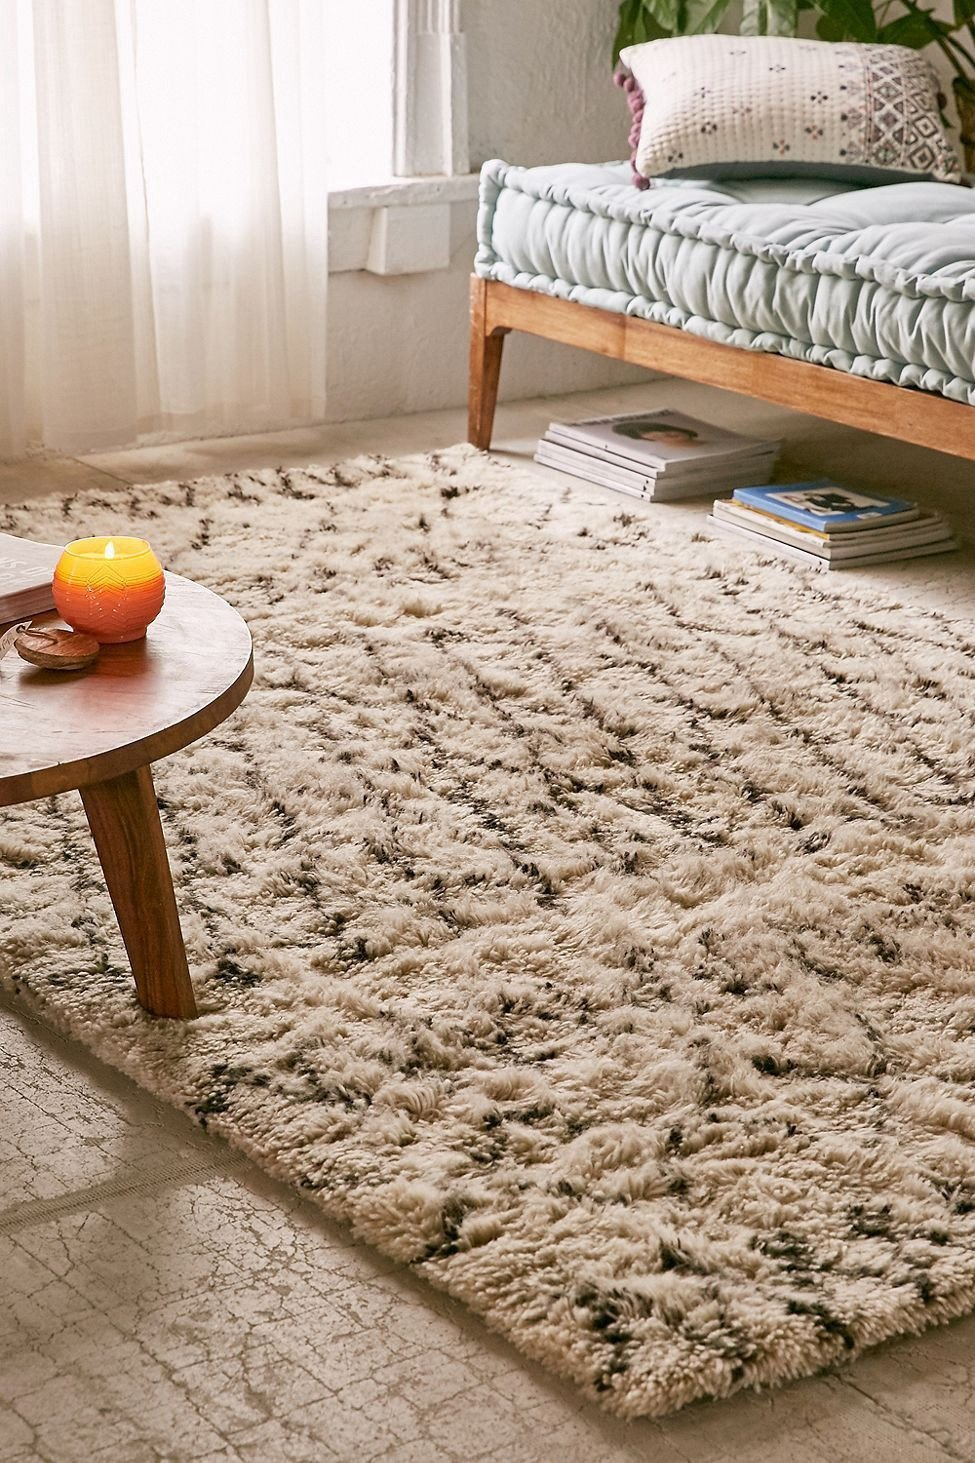 Furry Rugs for Bedroom Unique 21 Fashionable Carpet In Bedrooms Vs Hardwood Flooring